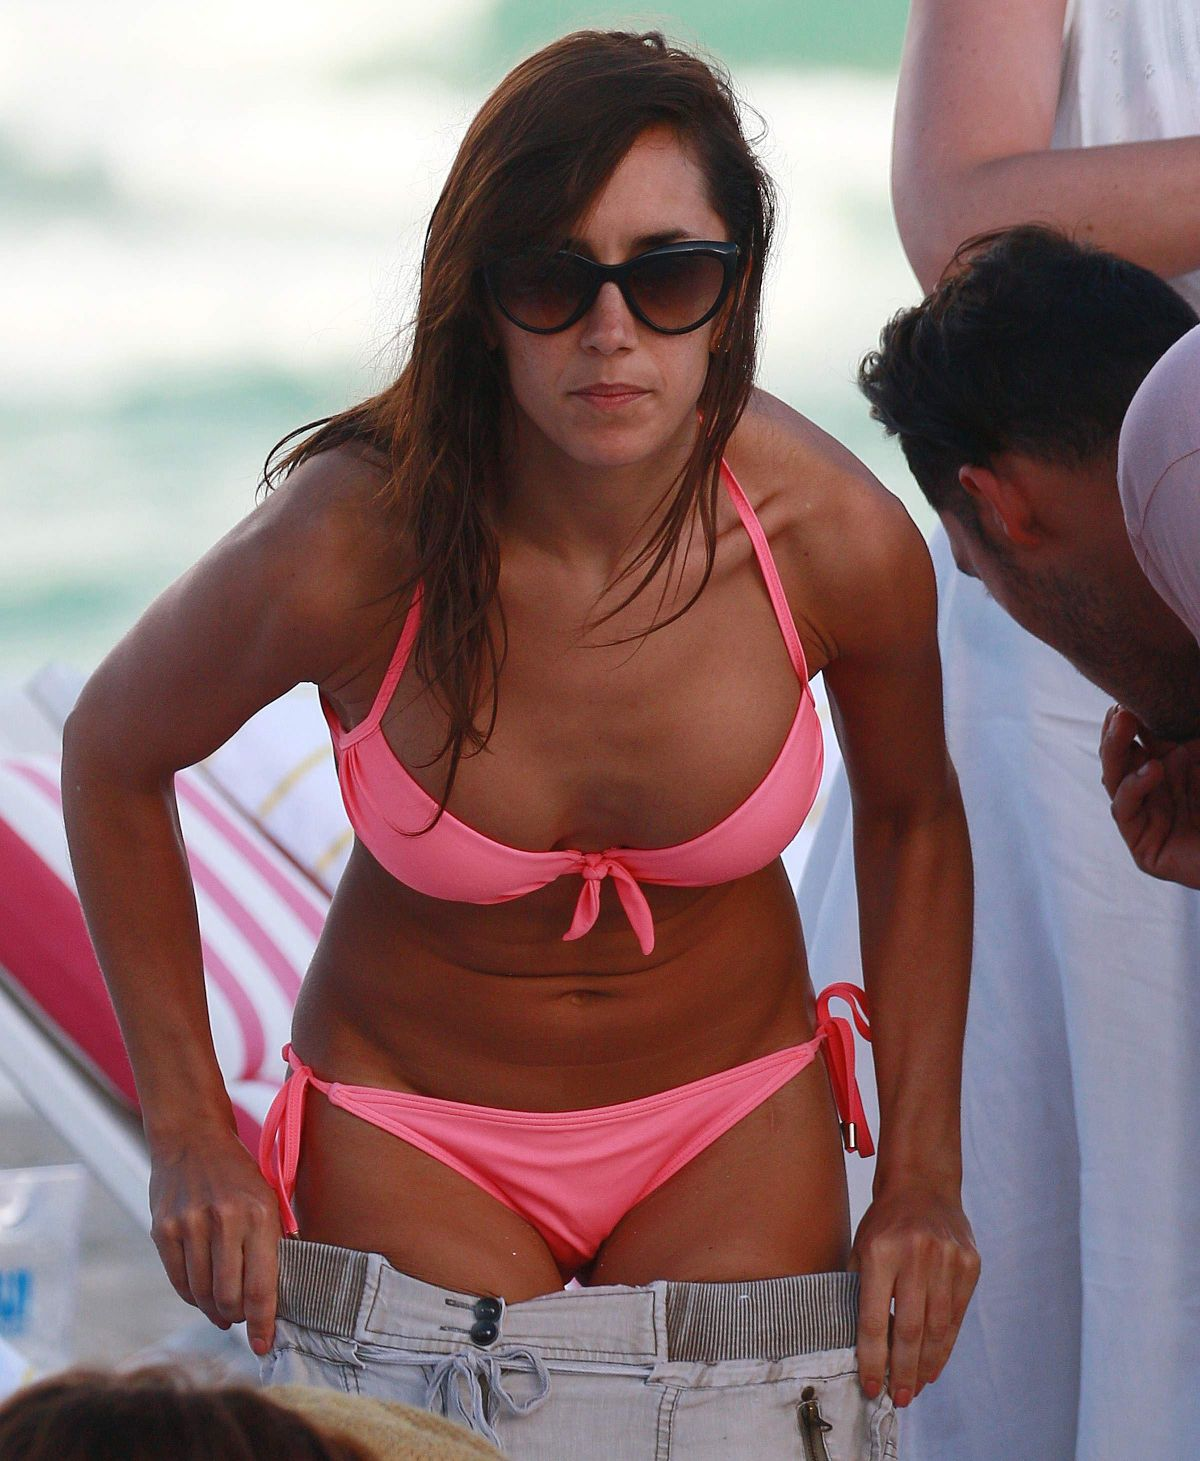 JANETTE MANRARA in Bikini at a Beach in Miami 01/02/2017